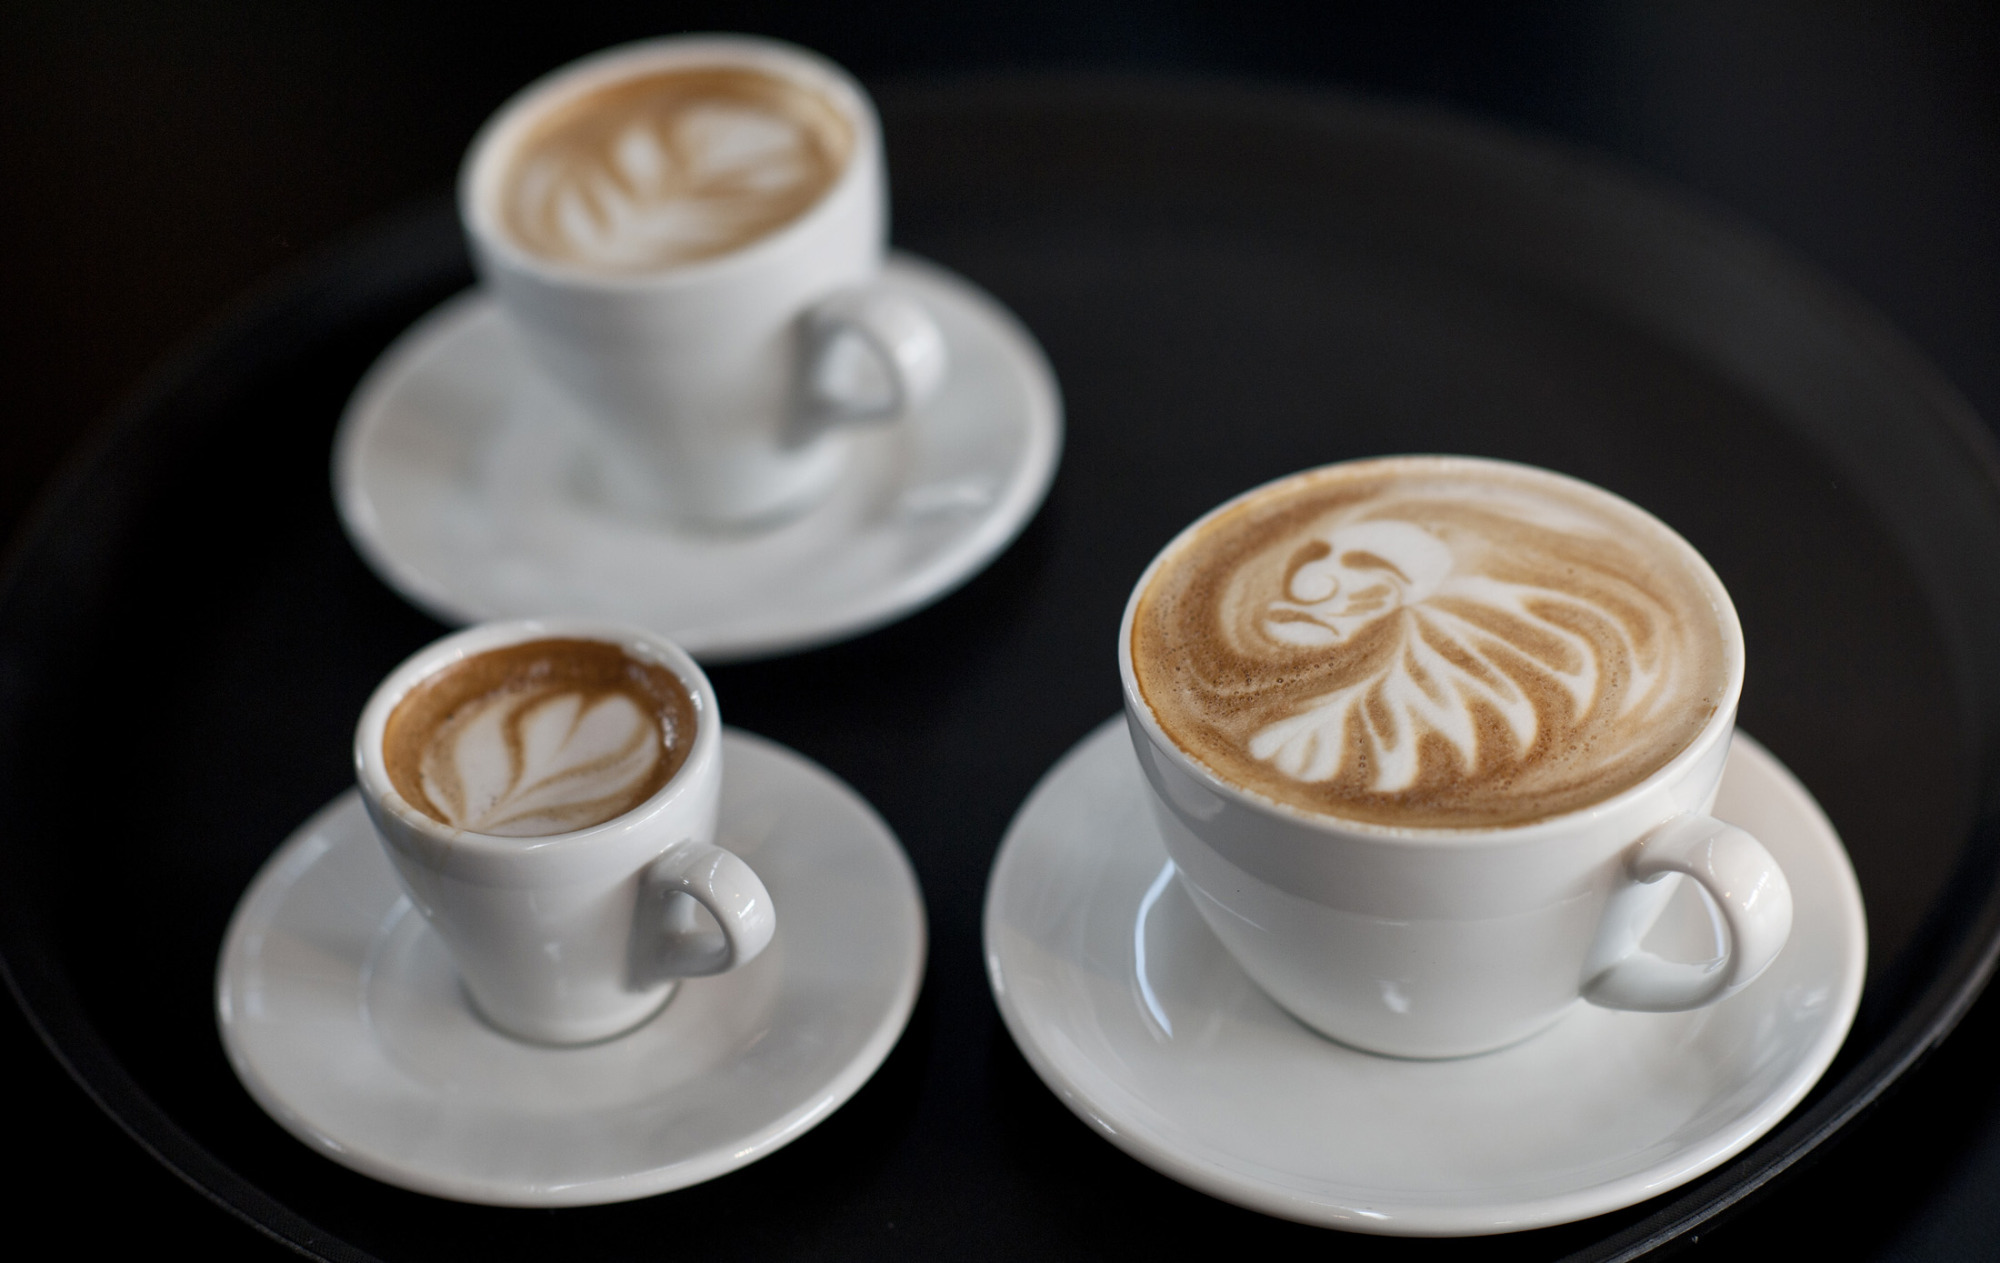 Latte art is displayed during finals of German Barista Championships in Hamburg